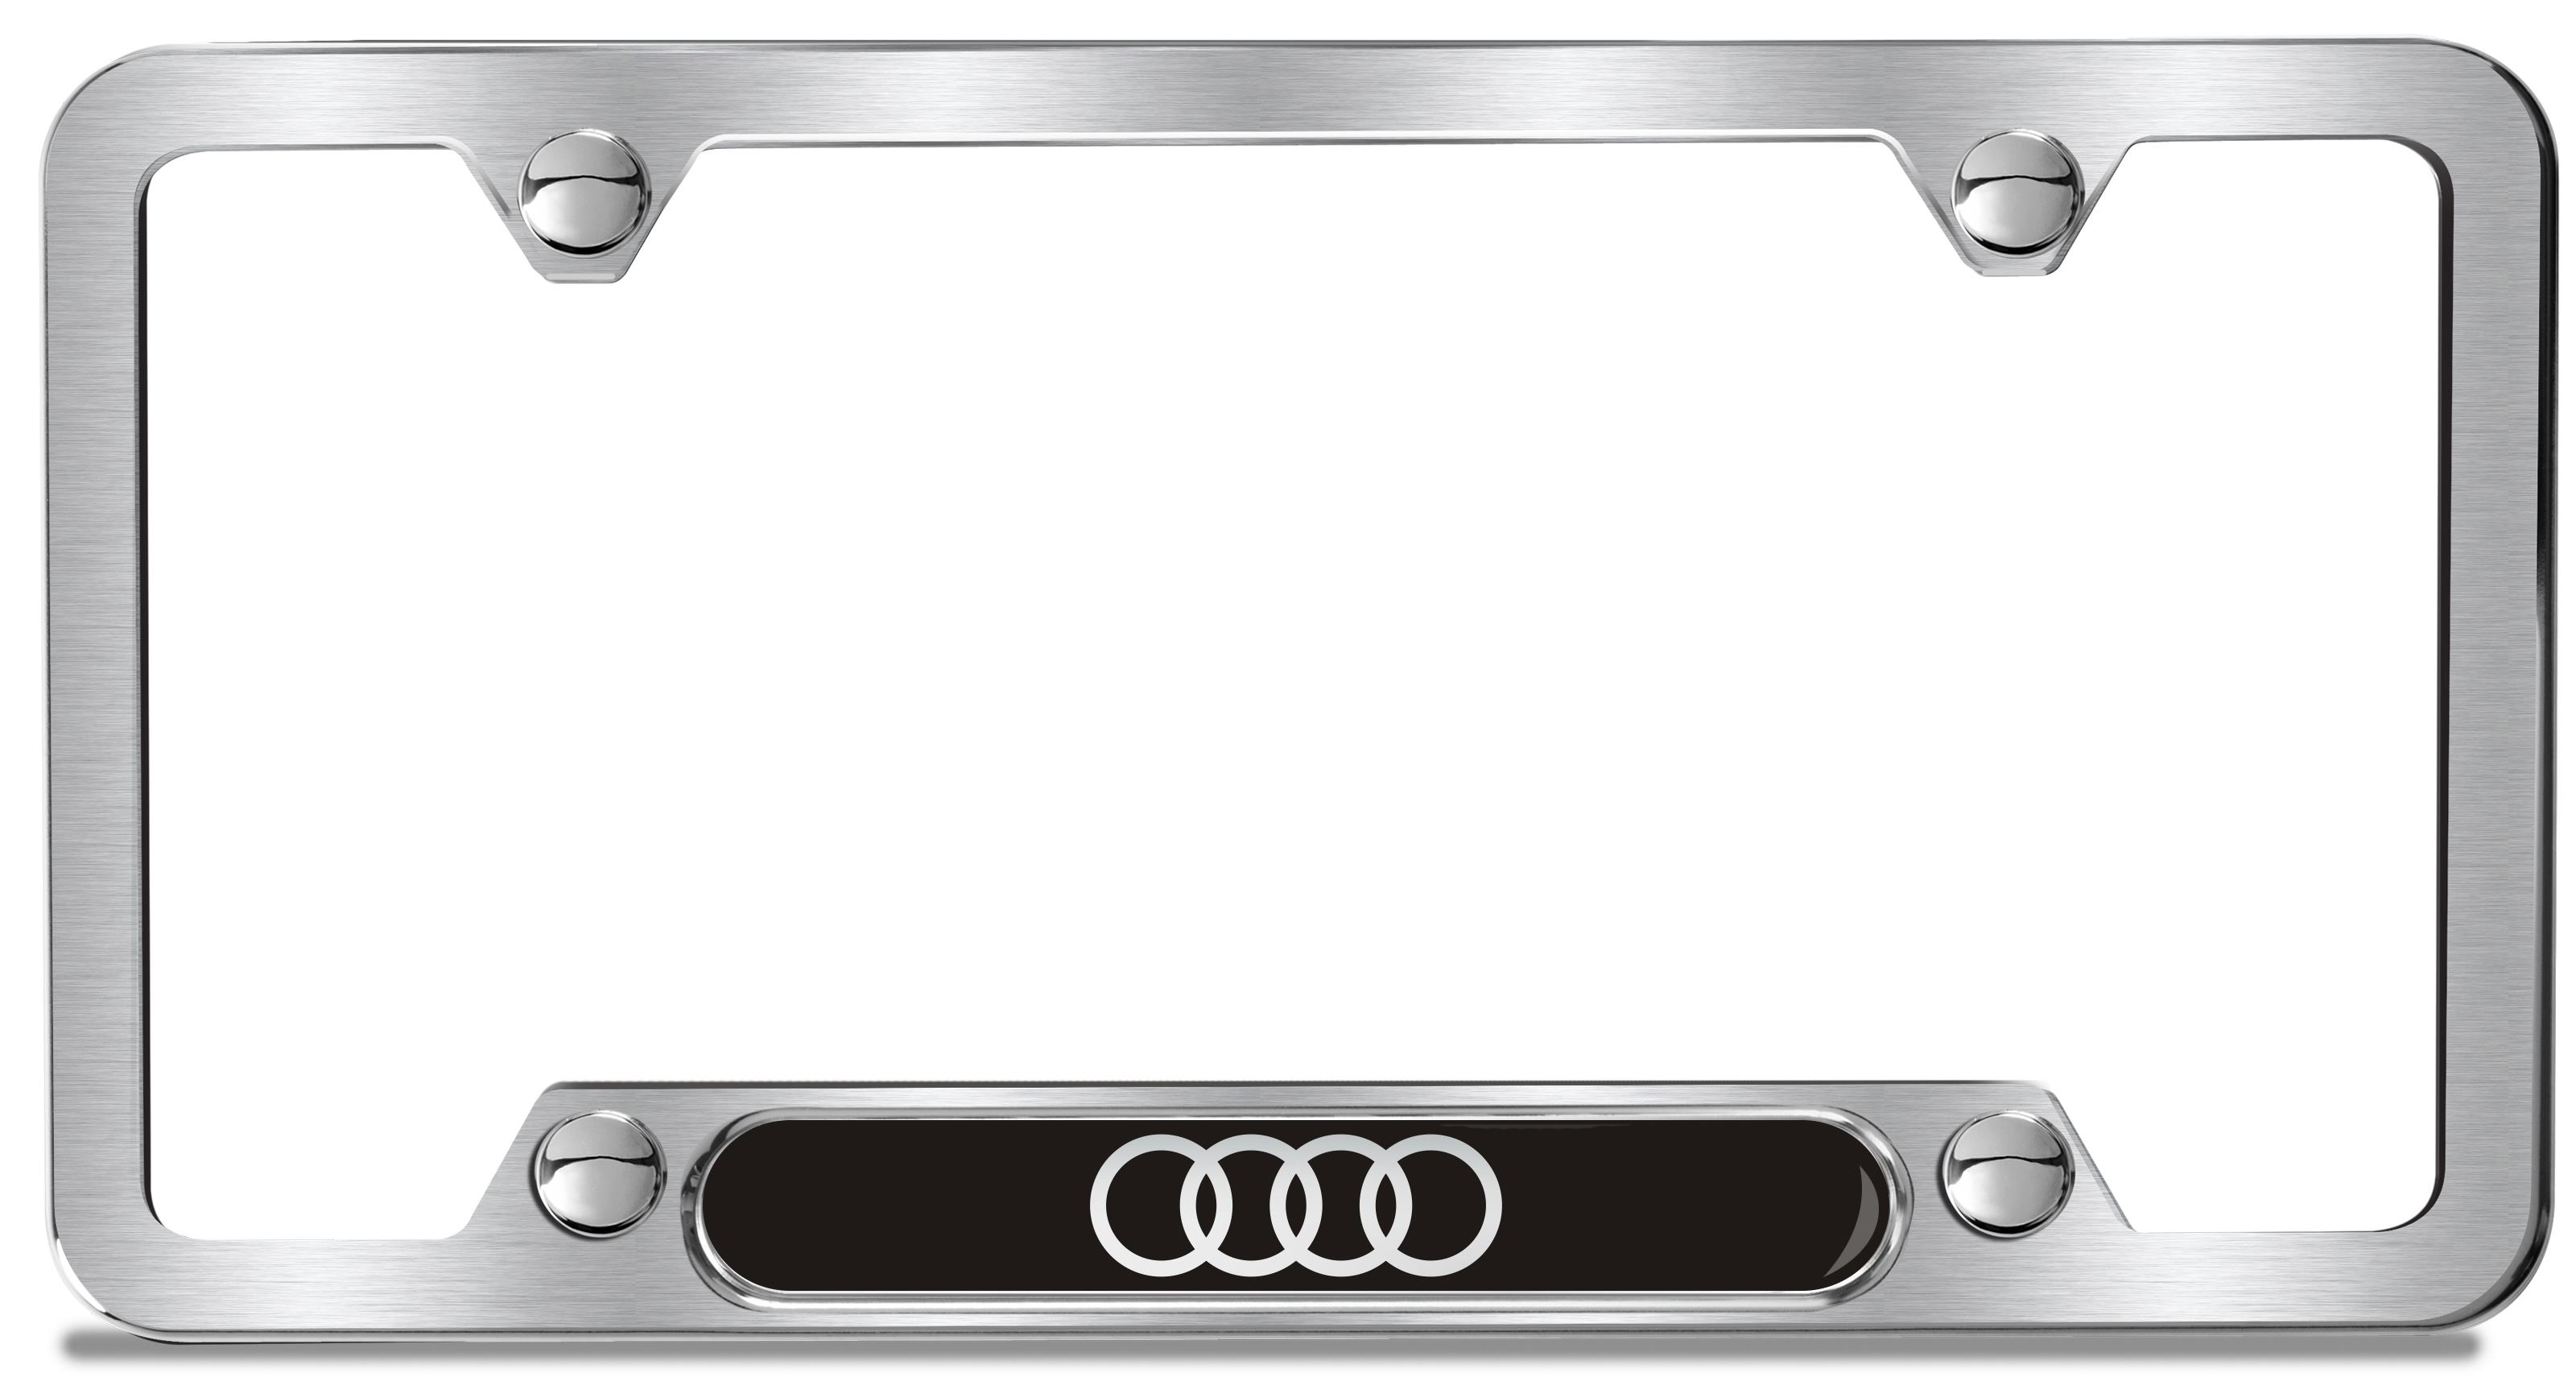 2017 Audi Q7 Audi Rings License Plate Frame Brushed